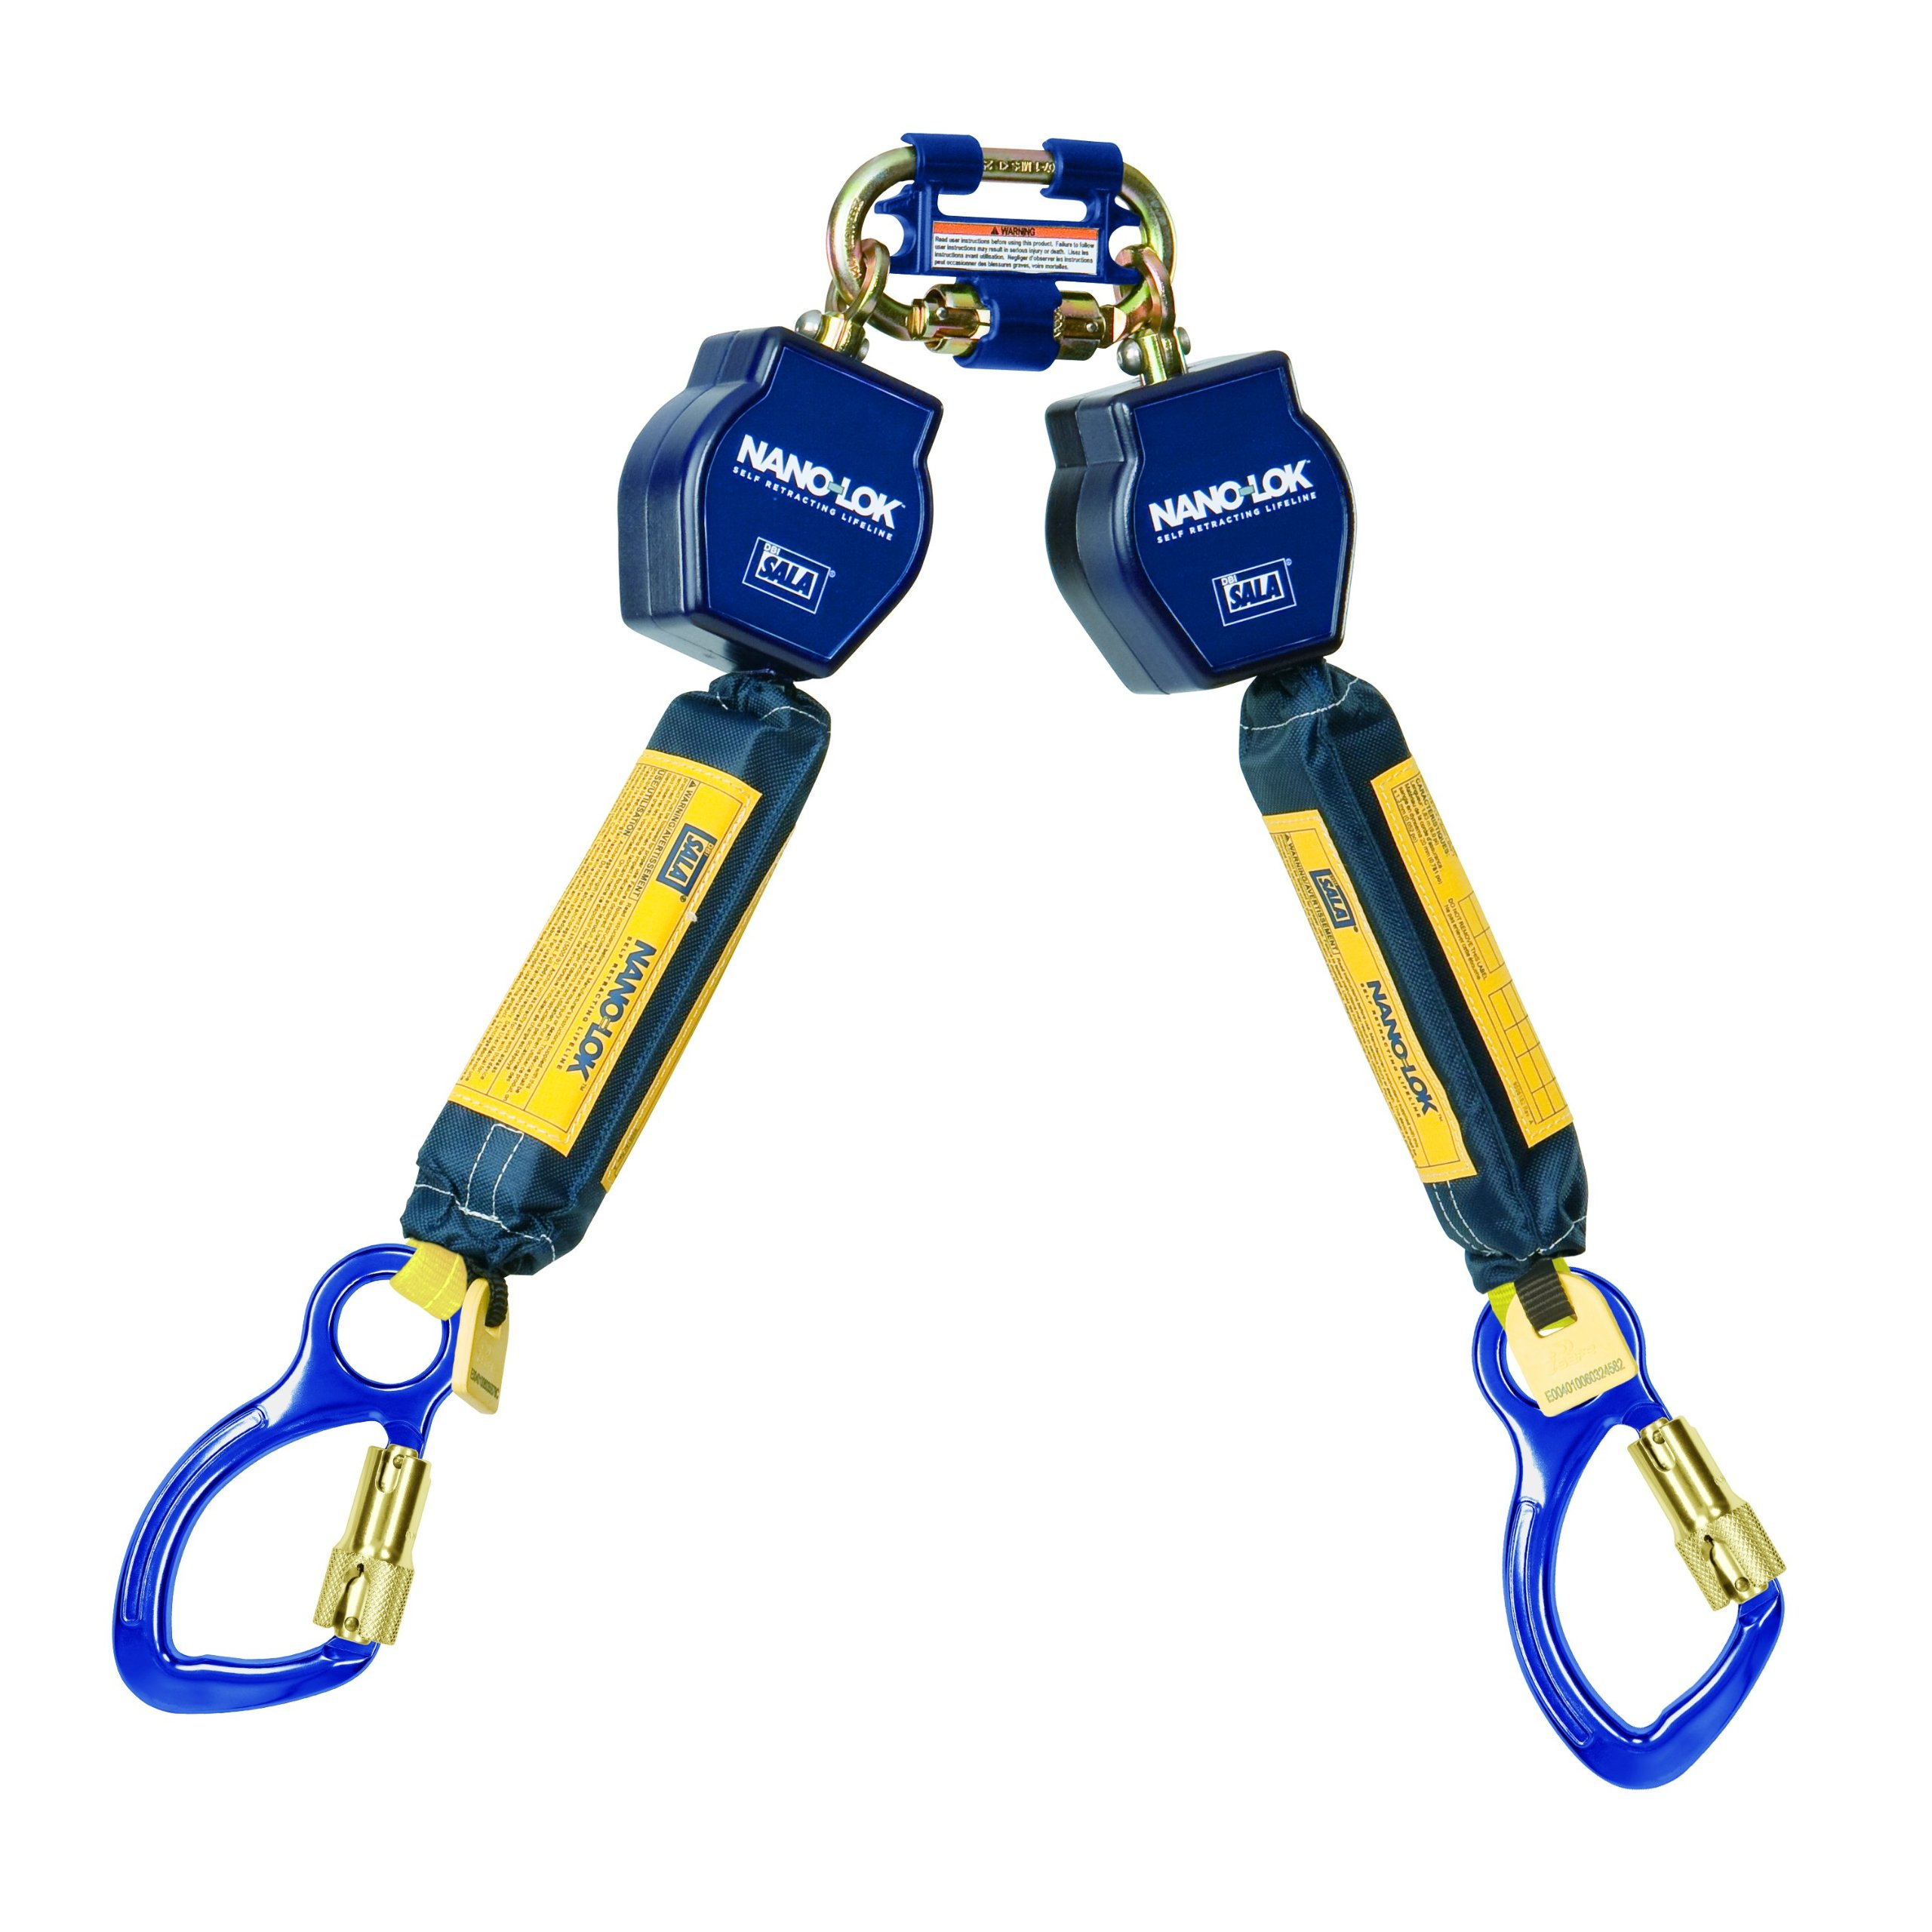 3M DBI-SALA Nano-Lok 3101275 Tie Off Self Retracting Lifeline, 6', 3/4'' Dynema Polyester Web, Aluminum Carabiners, Quick Connector For Harness Mounting, Blue by 3M Fall Protection Business